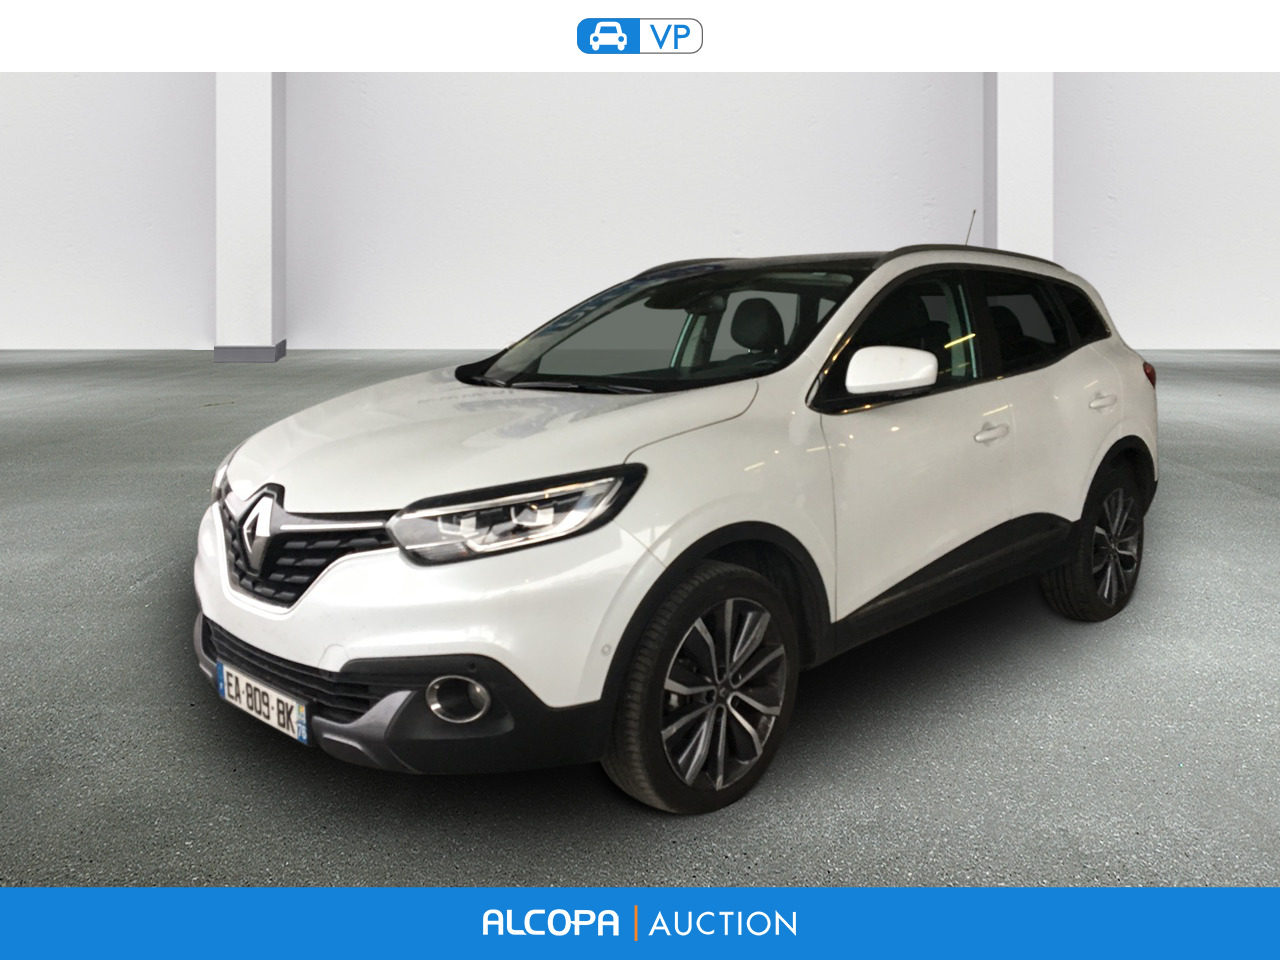 renault kadjar 06 2015 kadjar dci 130 energy 4wd intens bv6 alcopa auction. Black Bedroom Furniture Sets. Home Design Ideas